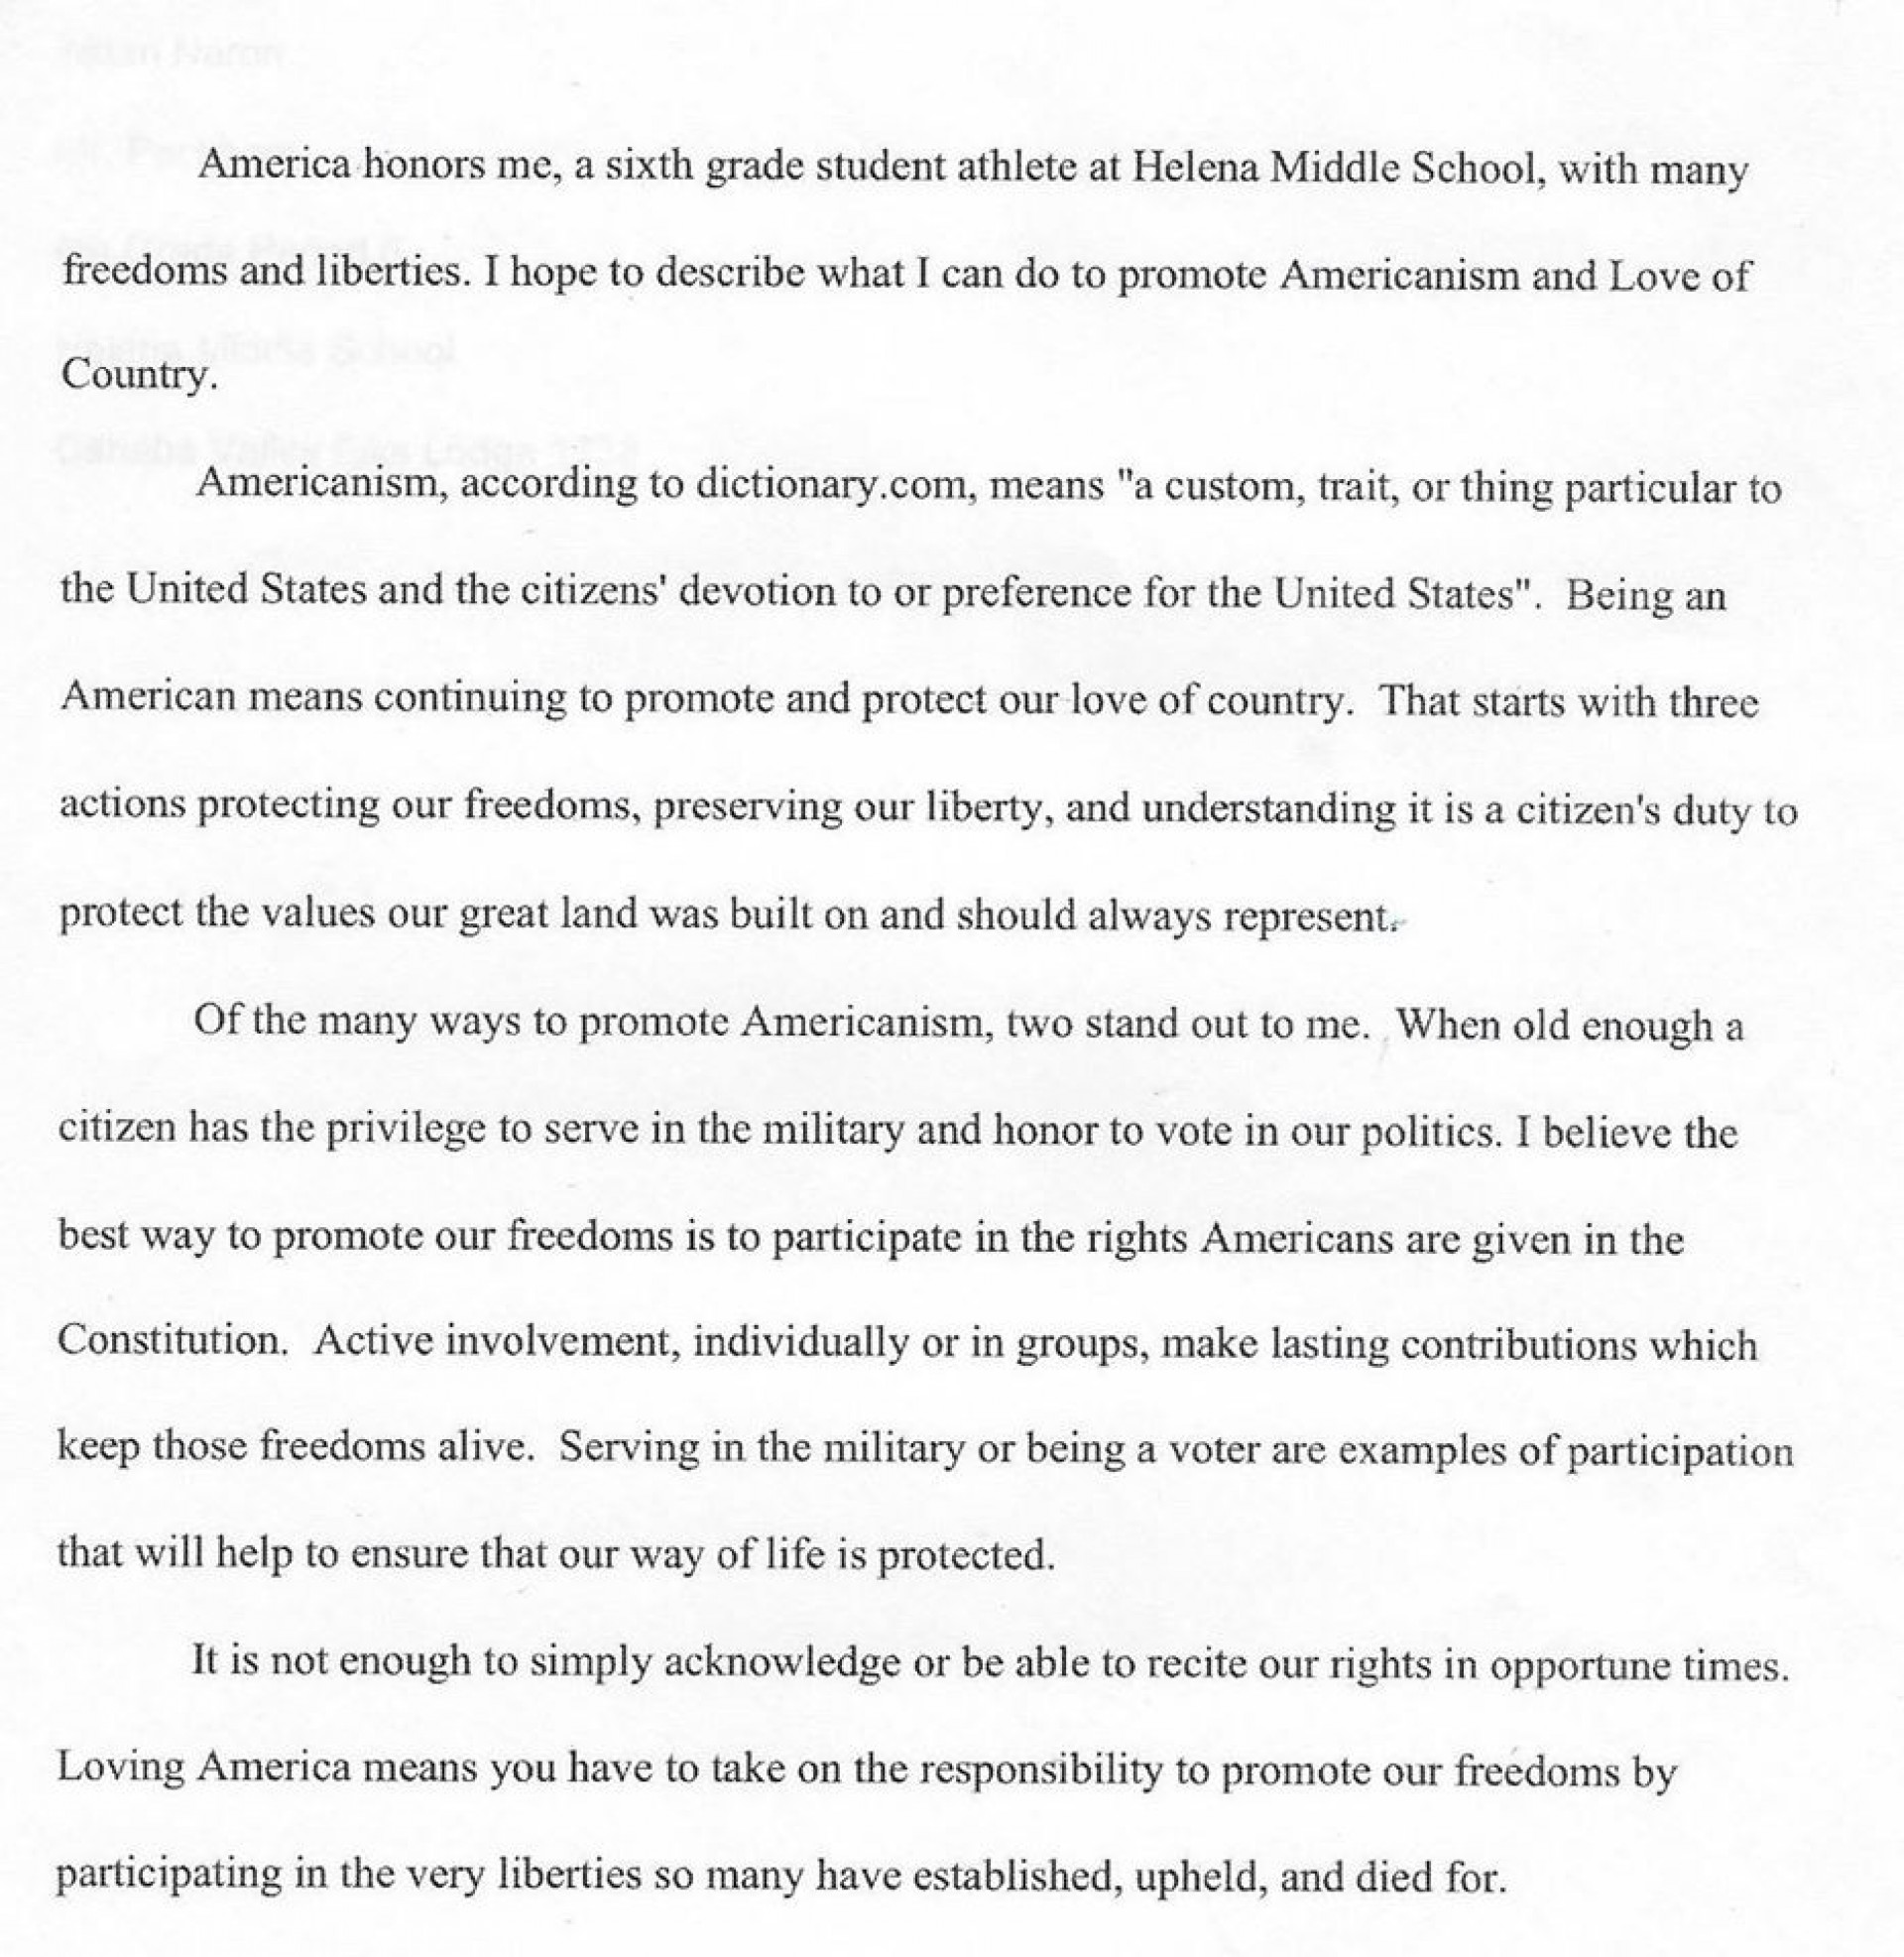 006 Essay Example Americanism Contest Astounding Amvets 2017 For Grades 7–12 Education Leaders 1920